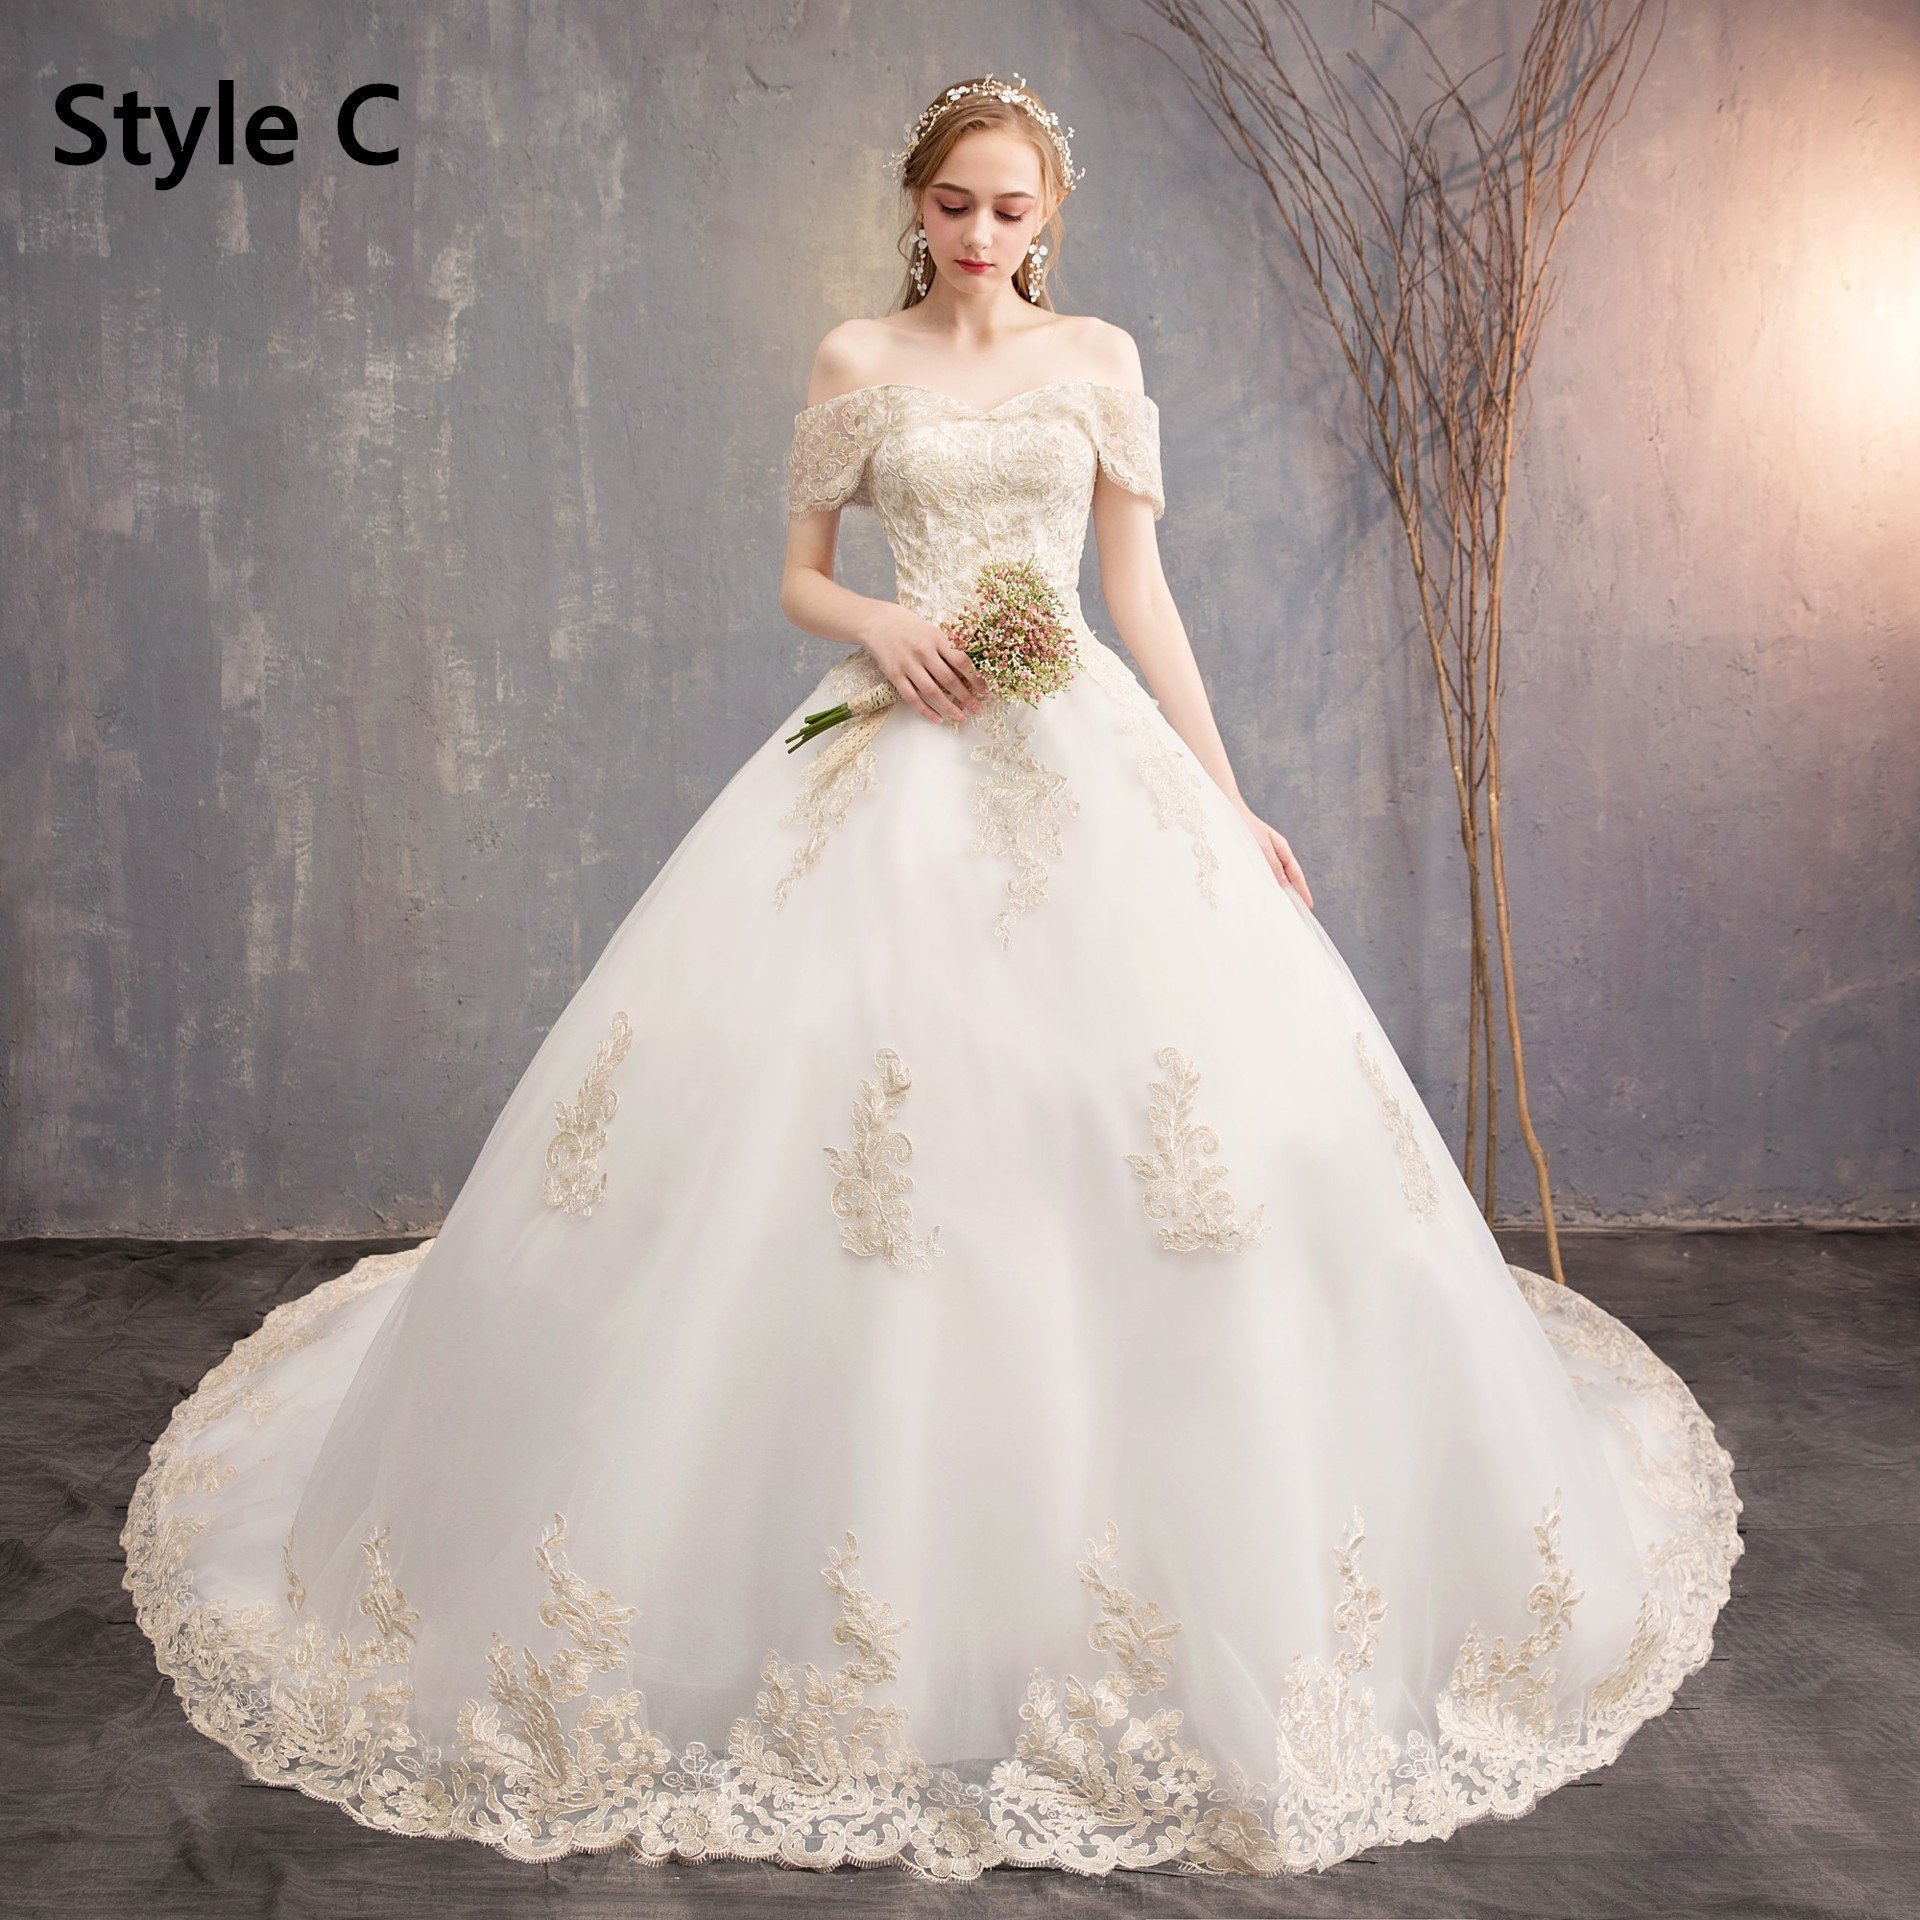 Best Wedding Dresses Lace Dresses Detachable Wedding Sleeves Vintage Dresses Androgynous Wedding Outfit Oversized Shirt Dress Wedding Dresses For Girls 2019 Formal Dresses To Wear To A Wedding